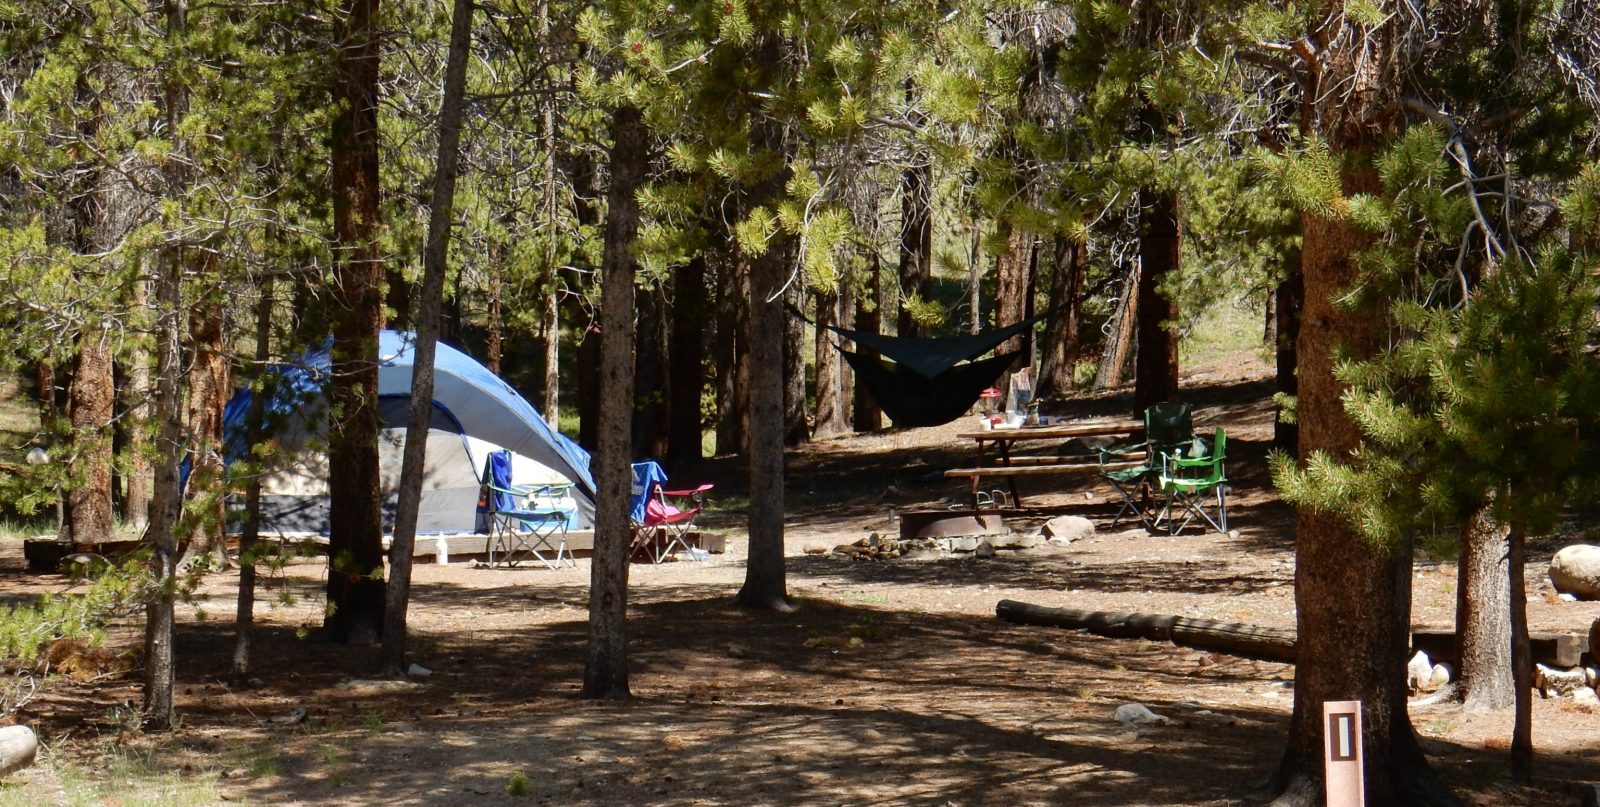 Camping Etiquette for Everyone